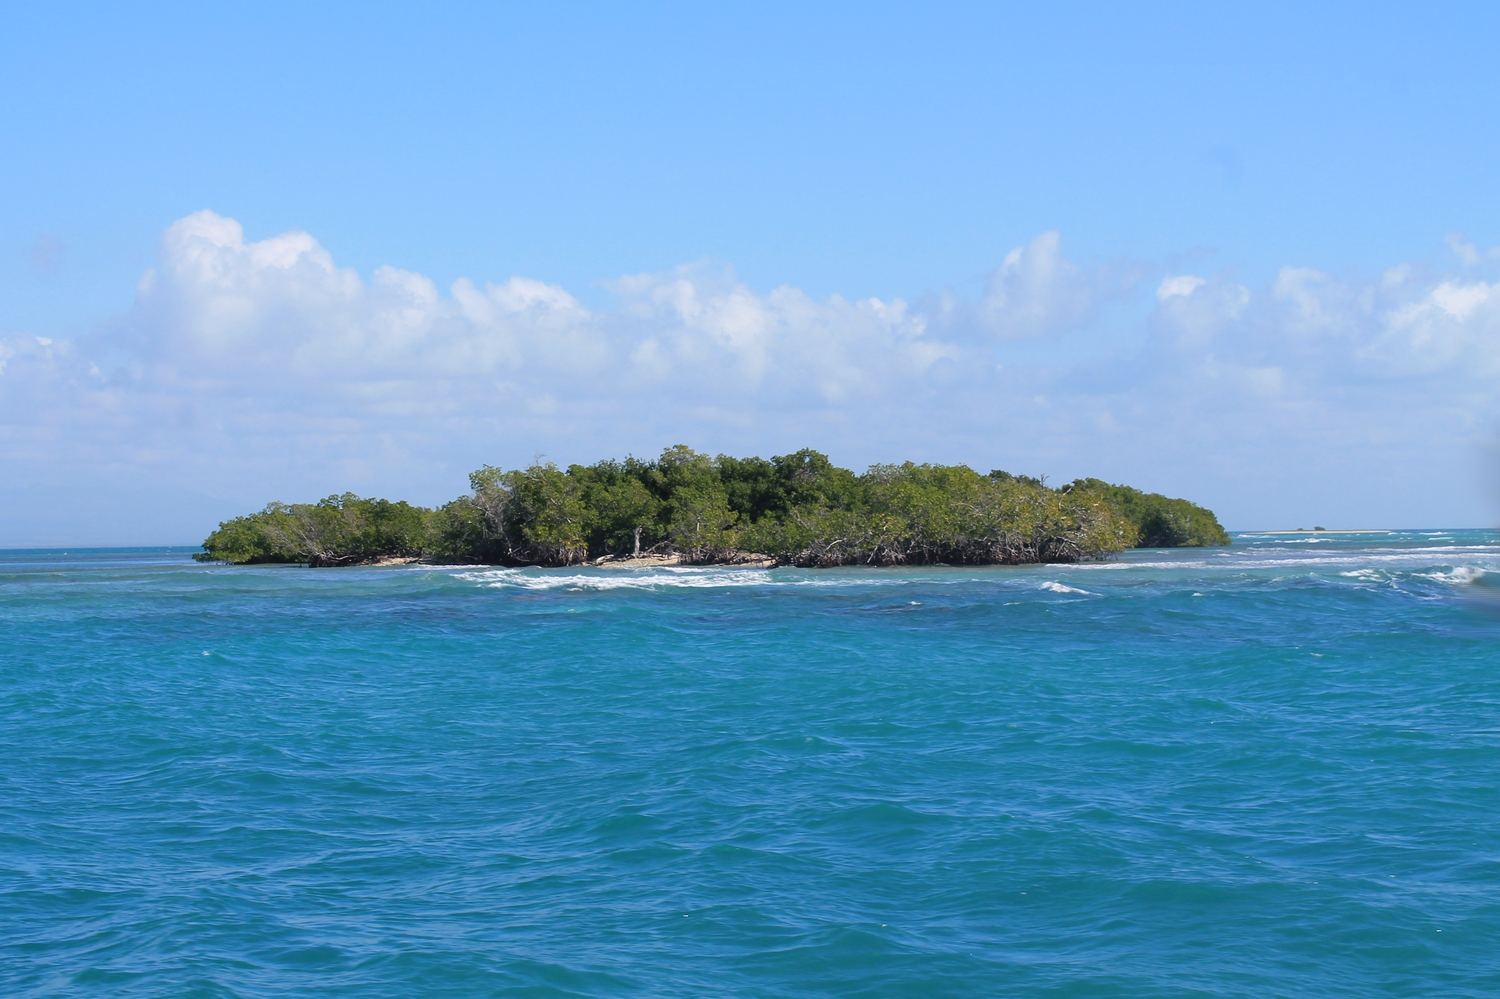 island view from the boat